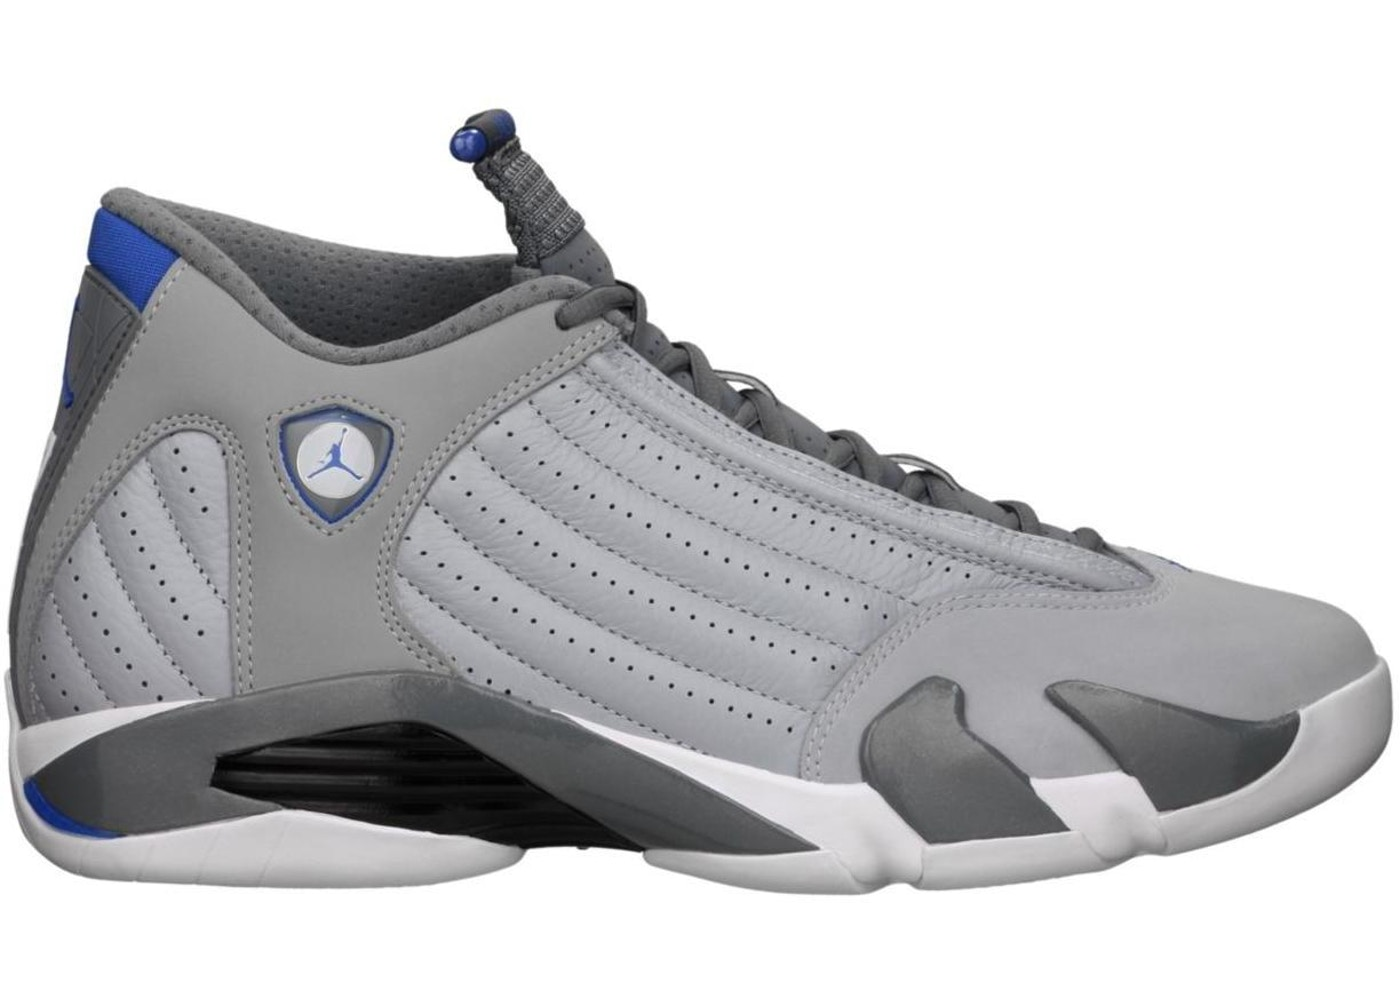 on sale 9280a d3135 Jordan 14 Retro Wolf Grey